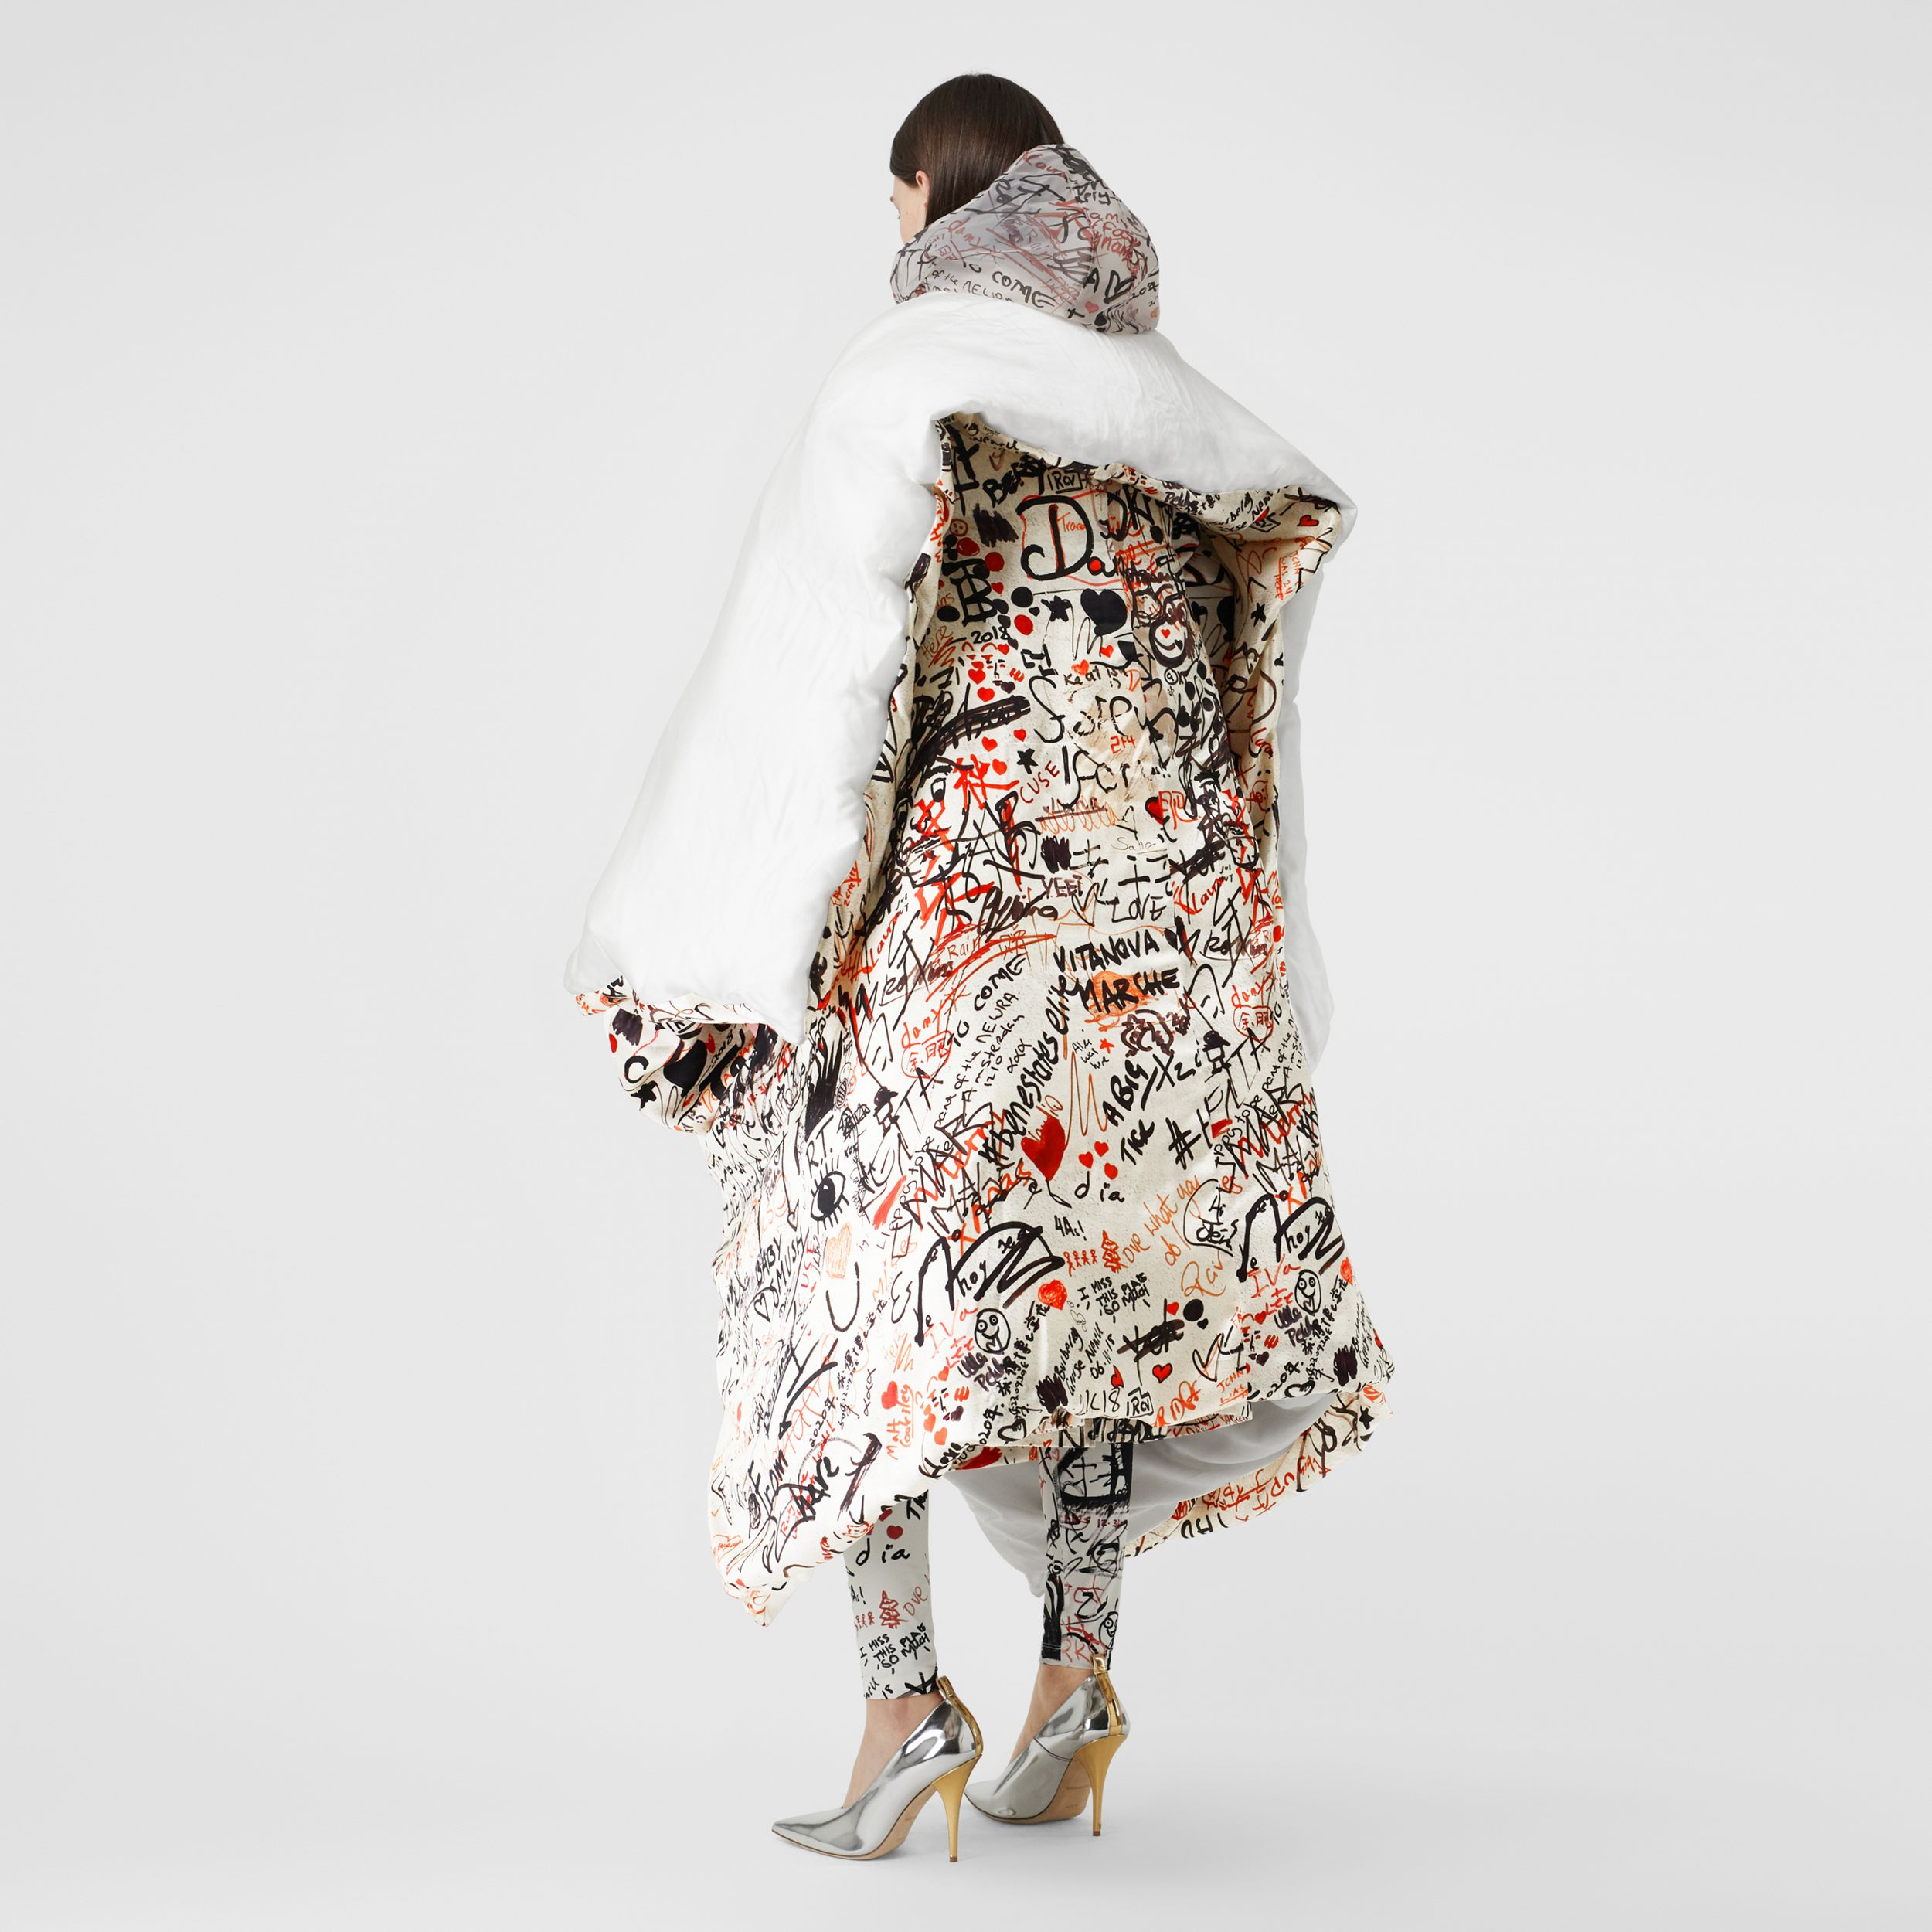 Graffiti Print Silk Satin Oversized Puffer Cape in Natural White - Women | Burberry - 3